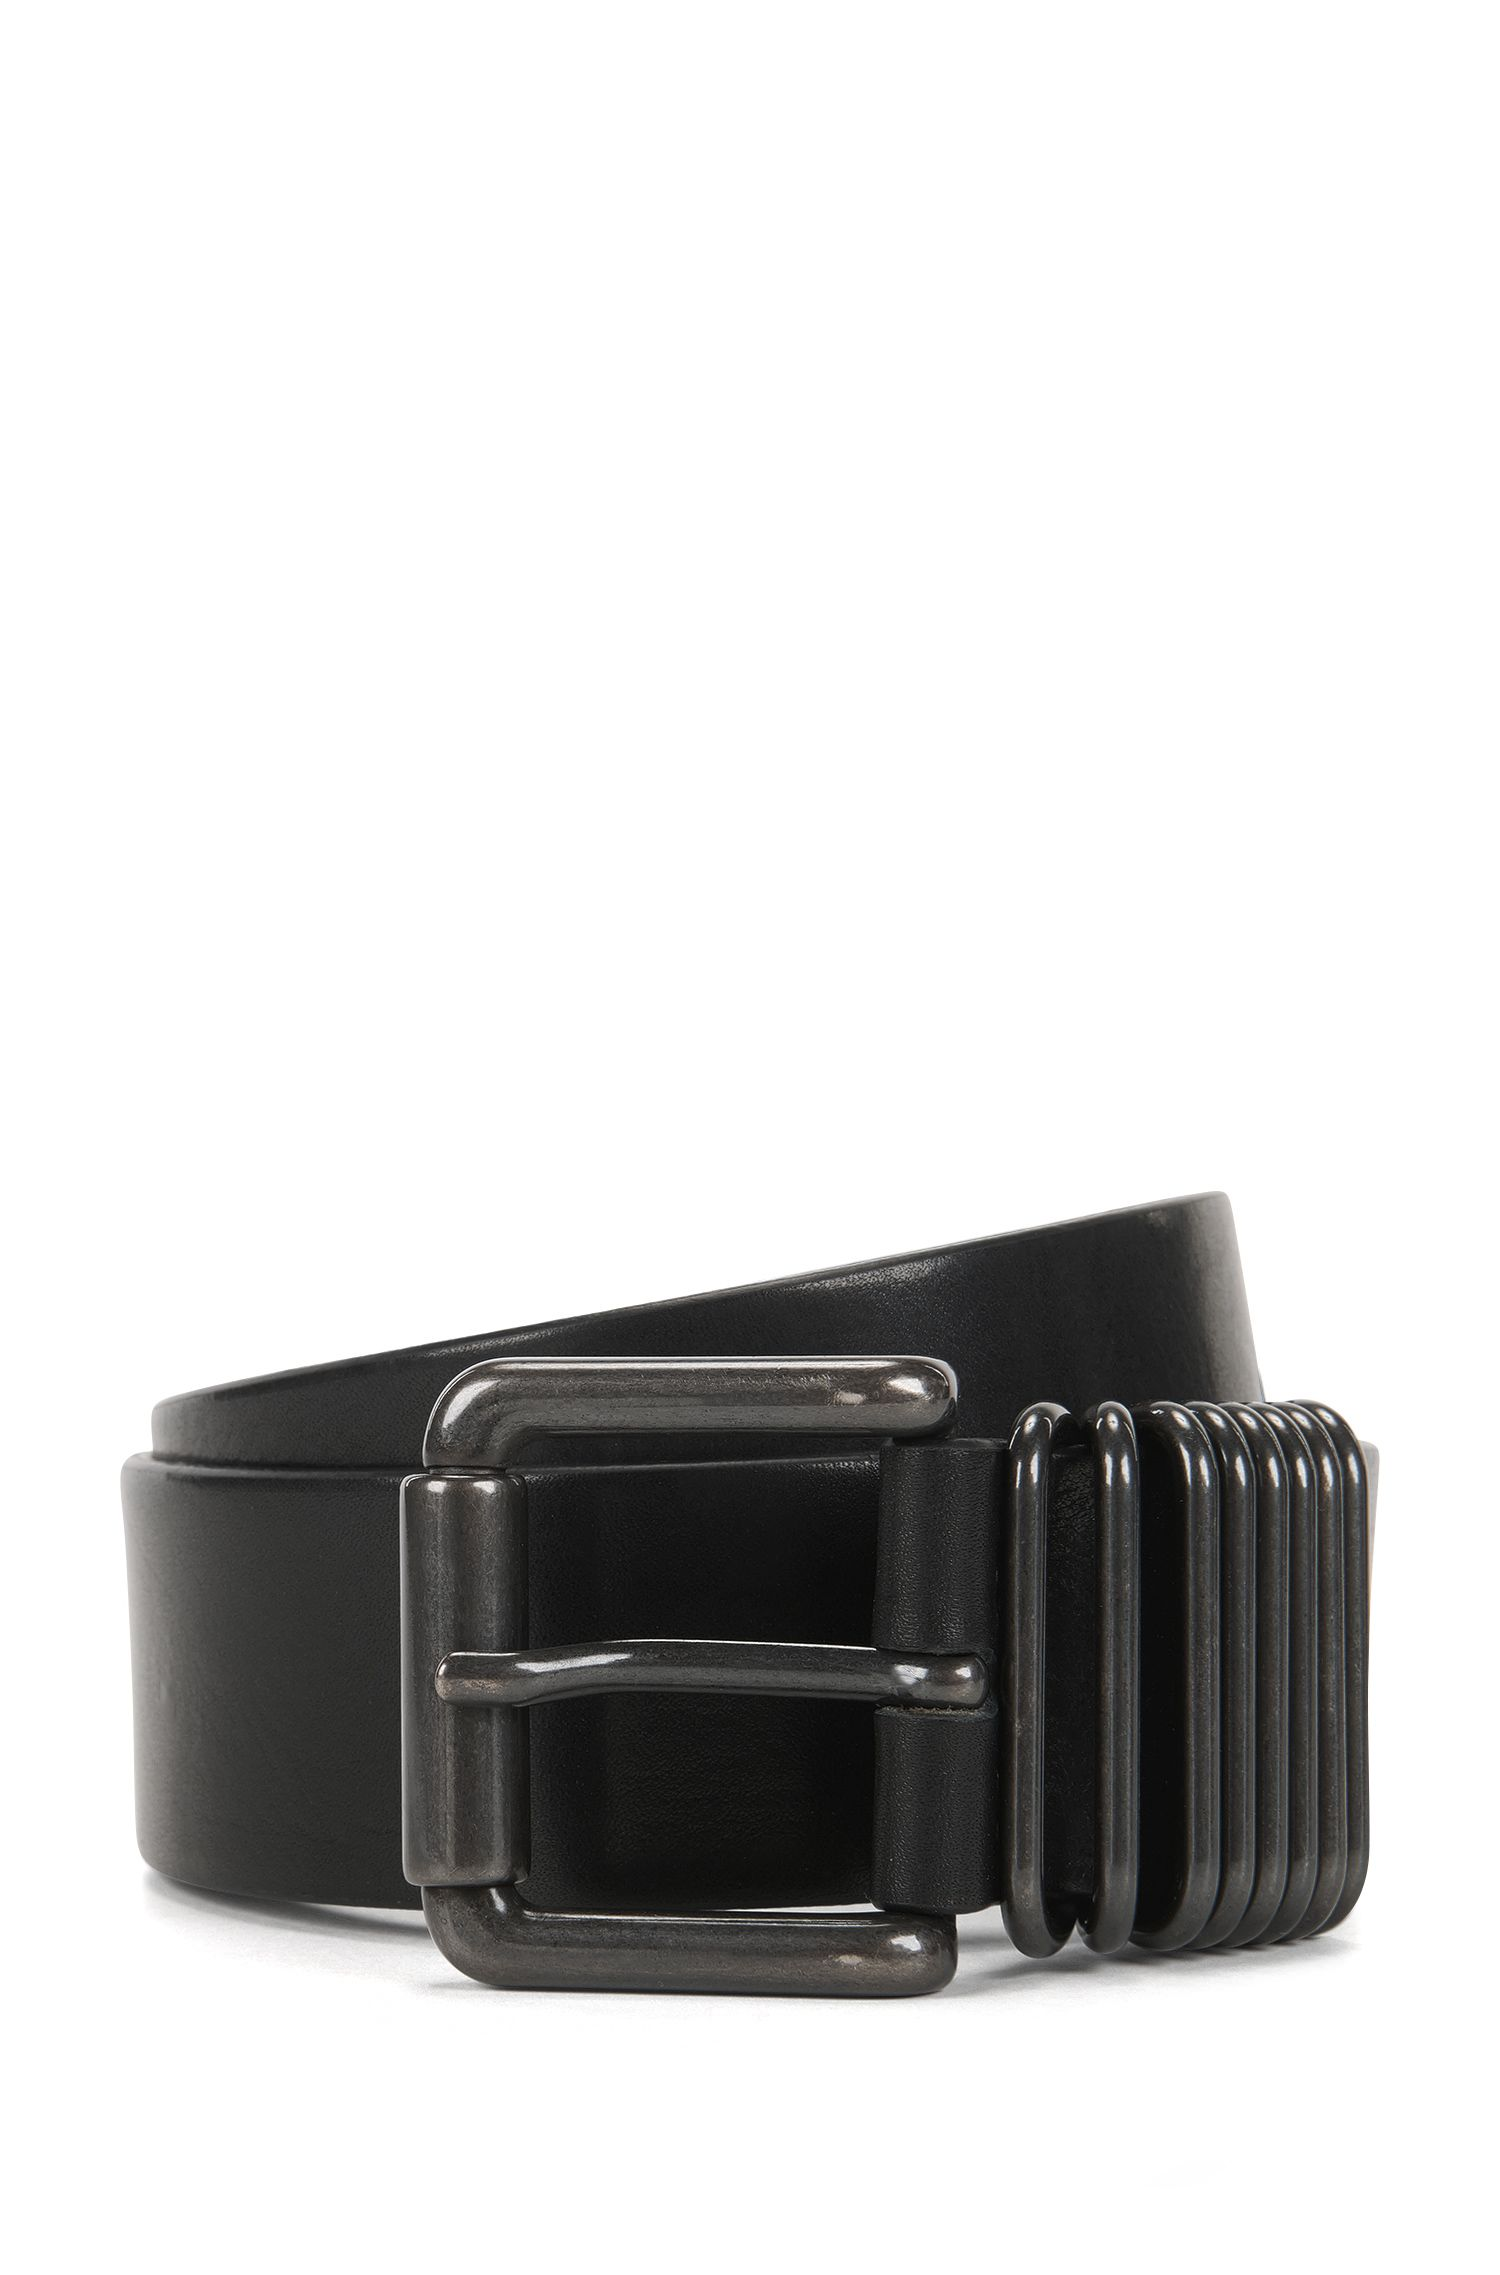 'Fedor FS' | Leather Belt